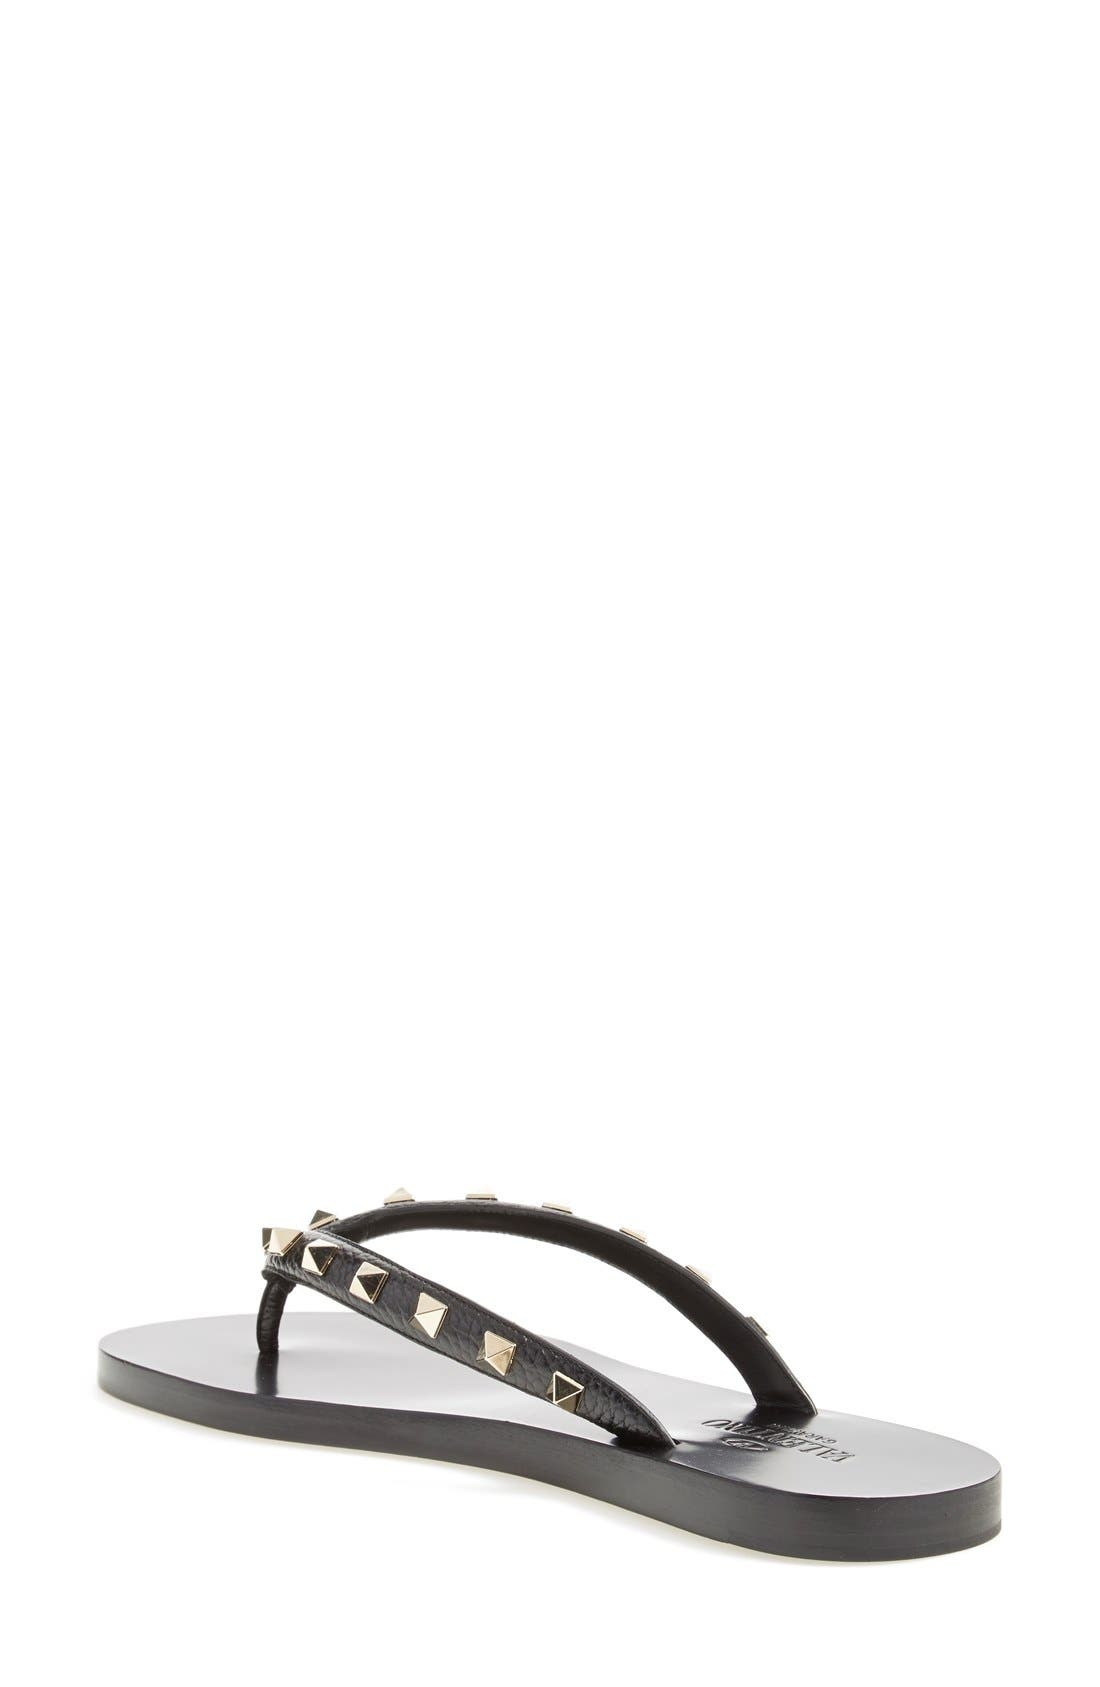 'Rockstud' Flip Flop,                             Alternate thumbnail 3, color,                             002